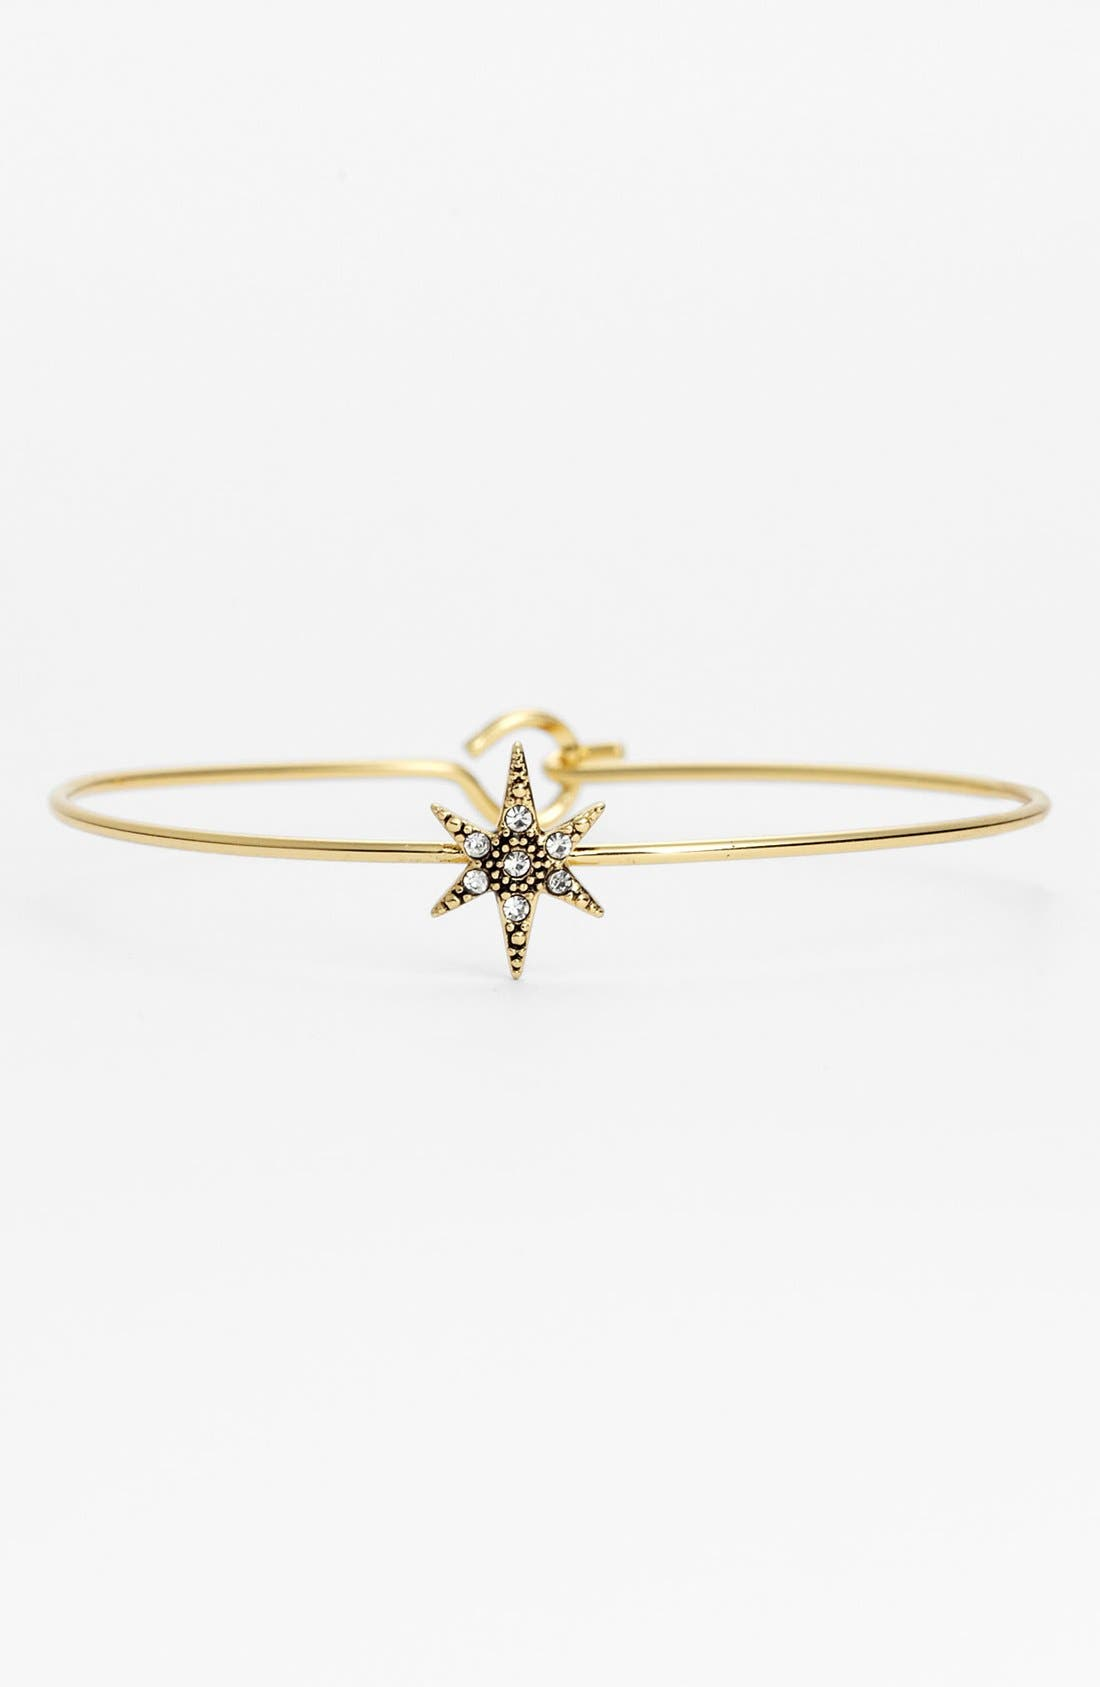 Main Image - Ariella Collection Star Station Bangle Bracelet (Nordstrom Exclusive)